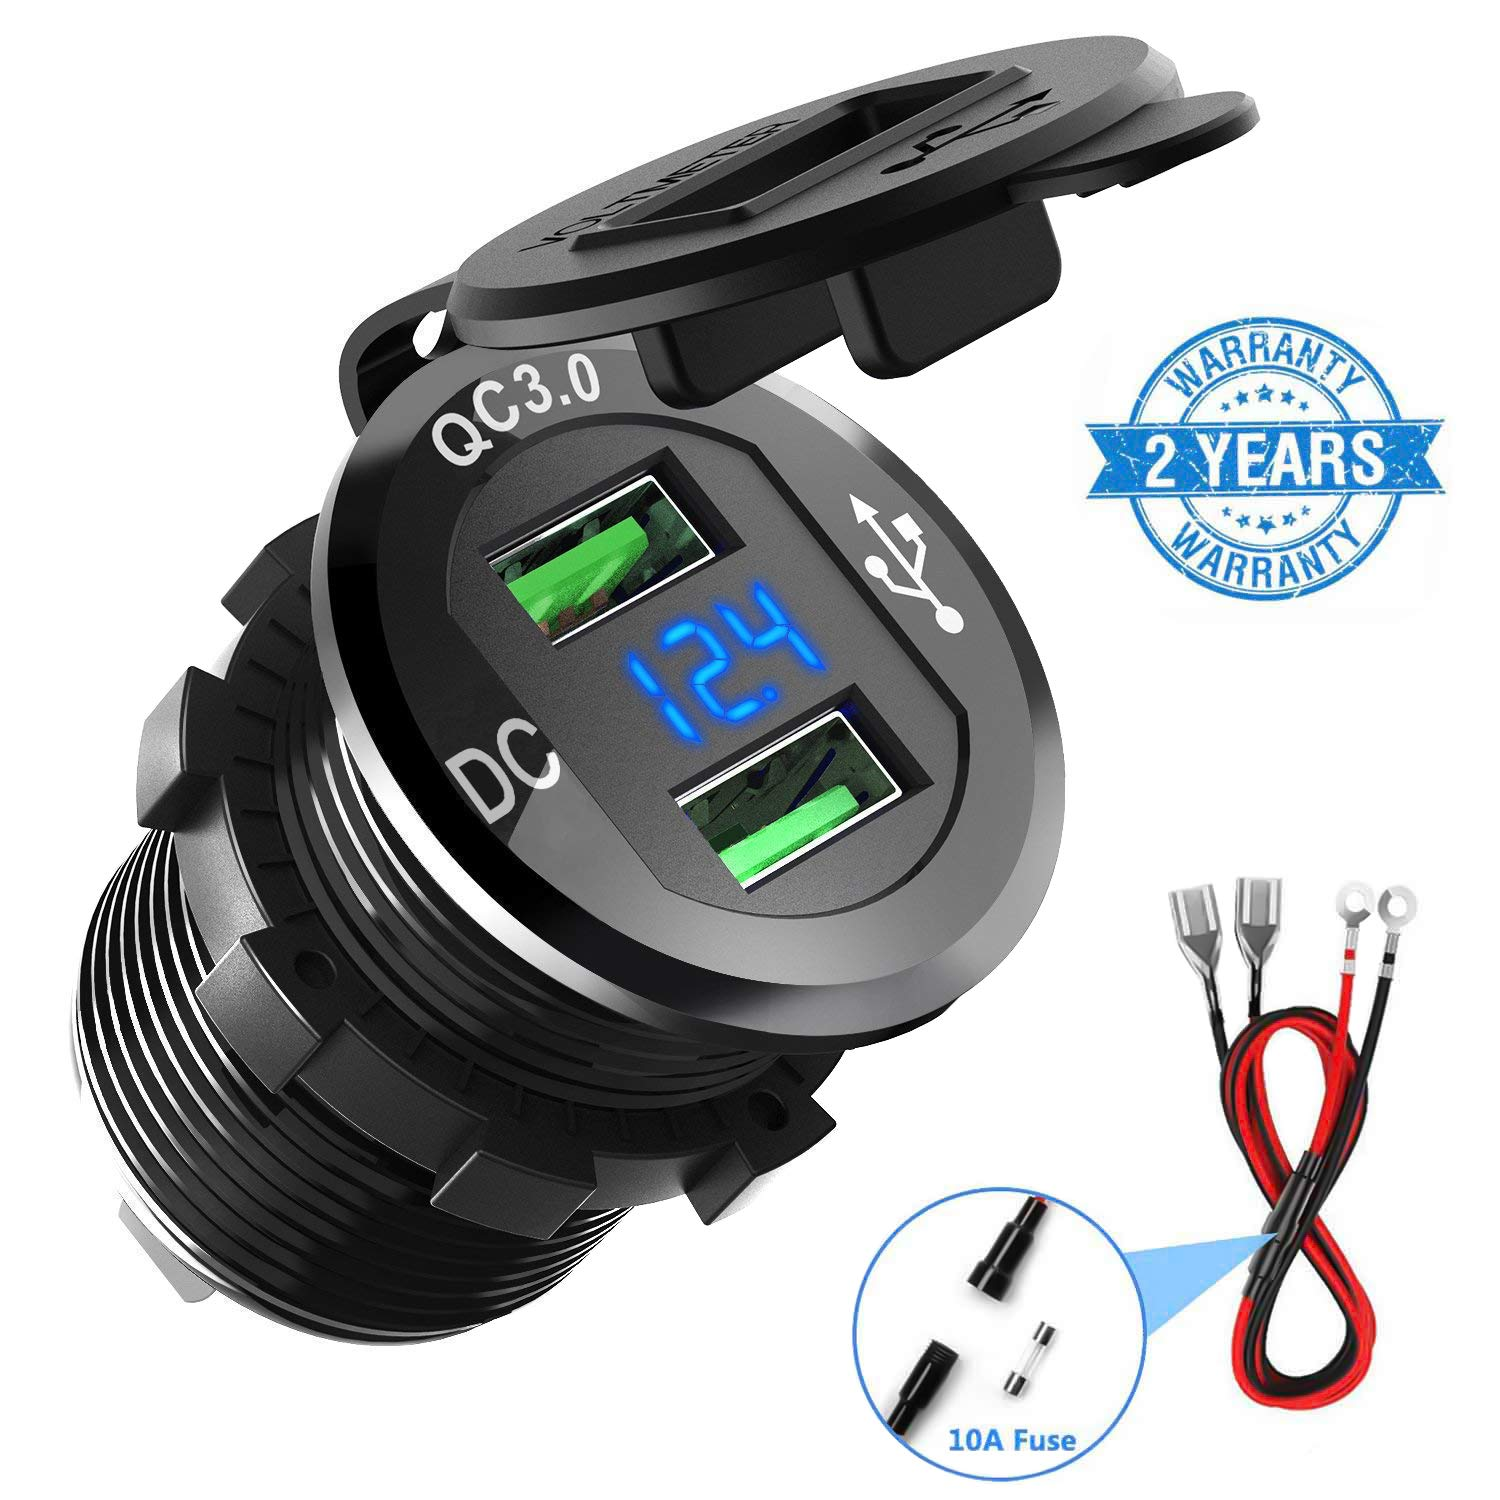 Quick Charge 3.0 Car Charger, CHGeek 12V/24V 36W Aluminum Waterproof Dual QC3.0 USB Fast Charger Socket Power Outlet with LED Digital Voltmeter for Marine, Boat, Motorcycle, Truck, Golf Cart and More by CHGeek